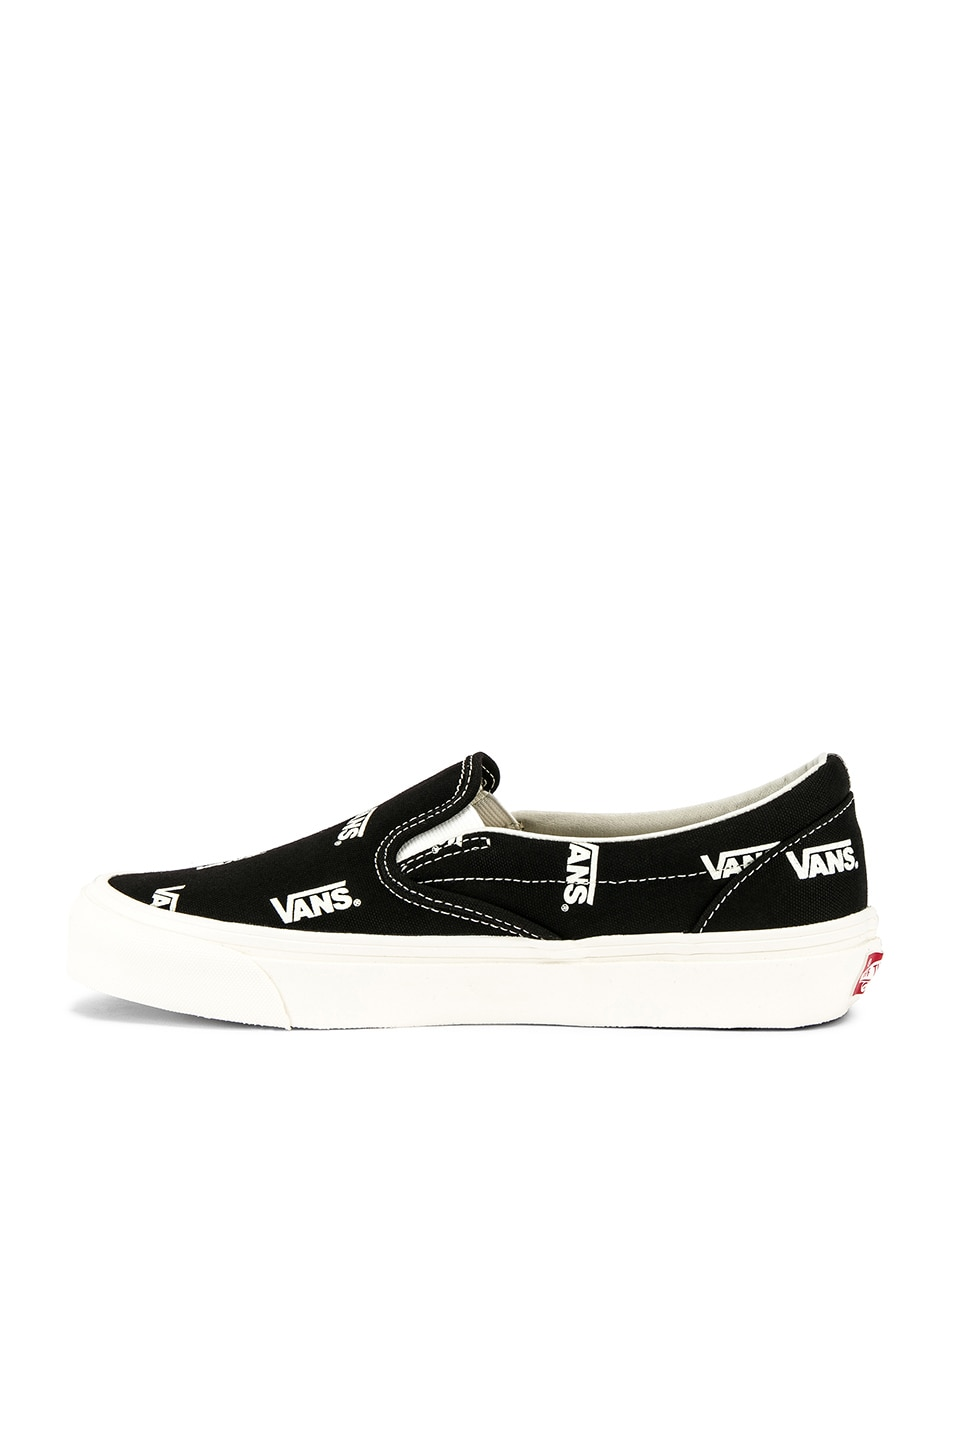 13cd2e7e3f Image 5 of Vans Vault OG Classic Slip-On LX in Black   Marshmallow